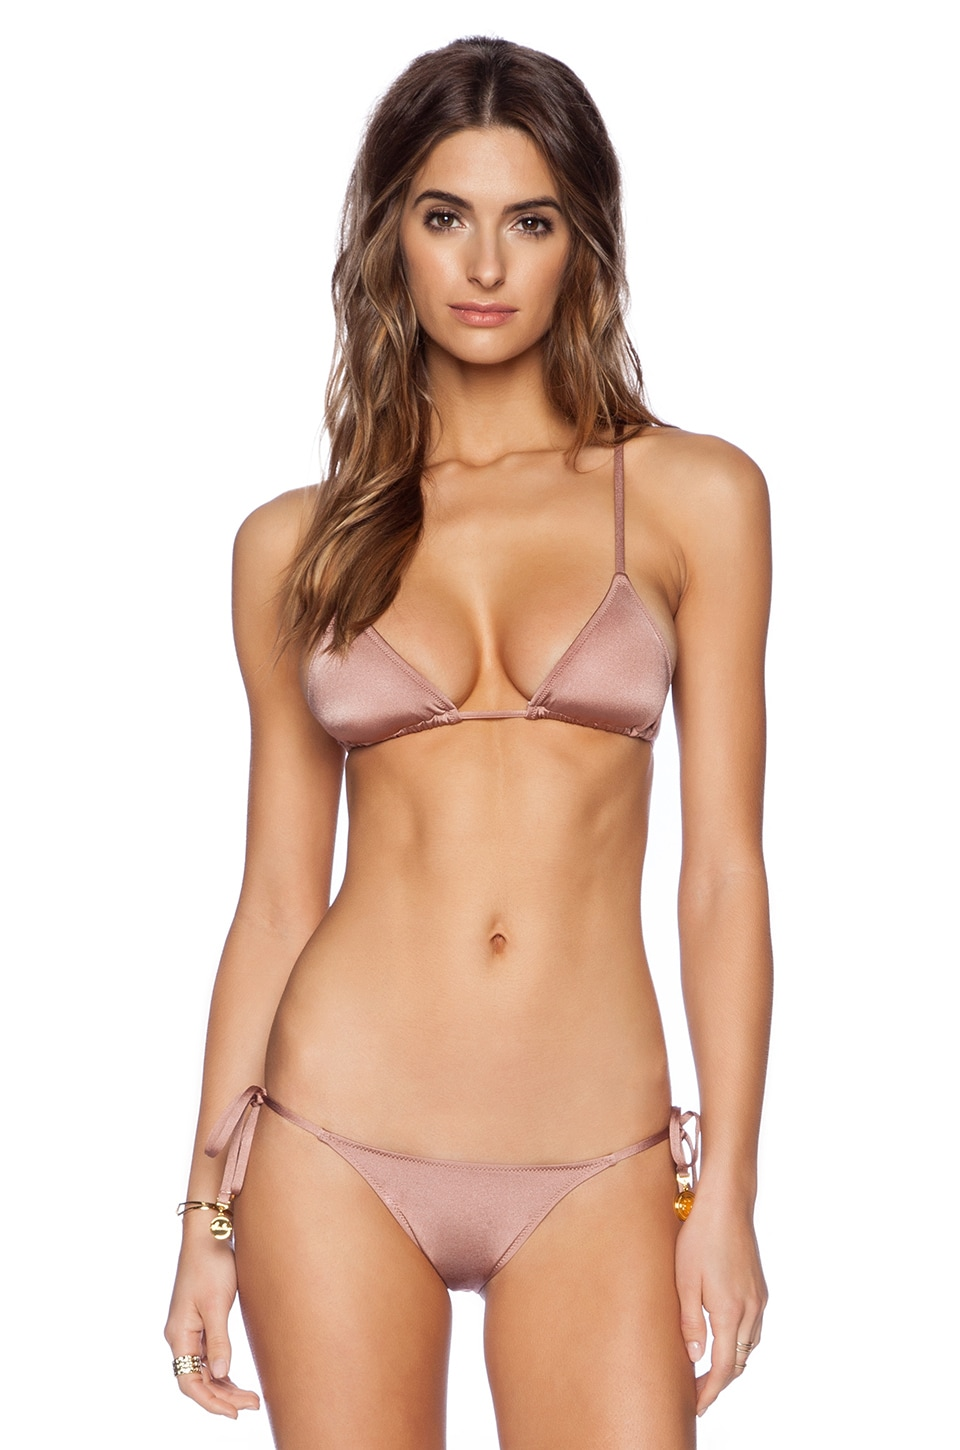 Charlie by Matthew Zink Grecian Coin Triangle Bikini Top in Cocoa